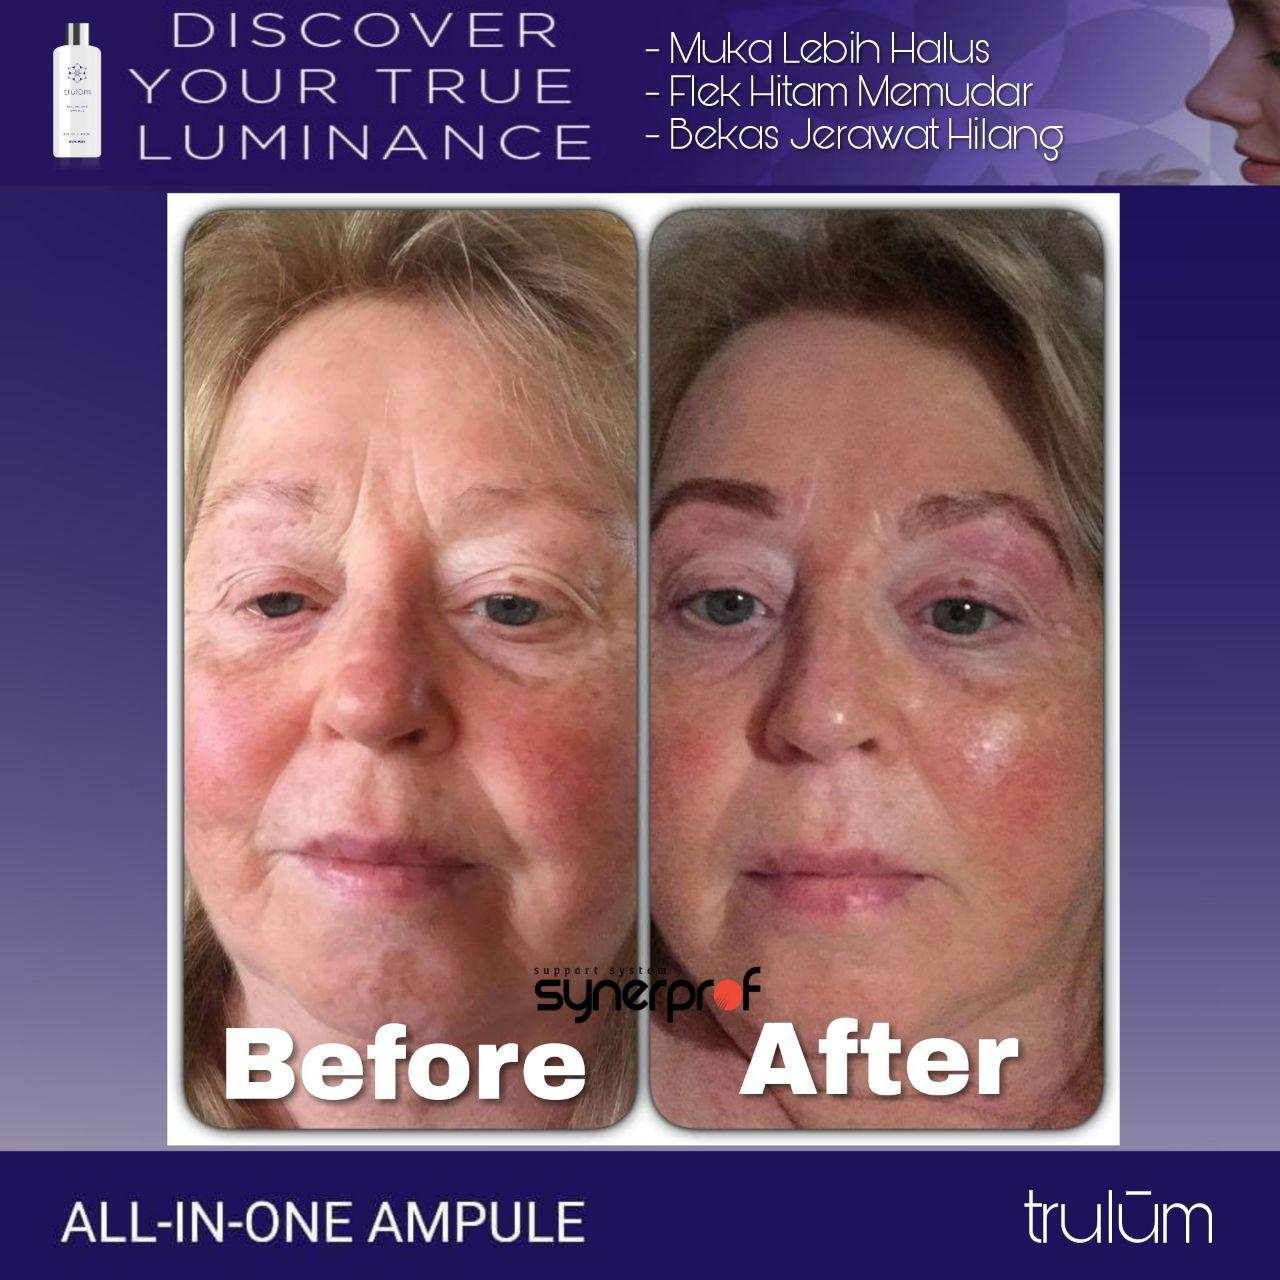 Jual Trulum All In One Ampoule Di Takisung WA: 08112338376